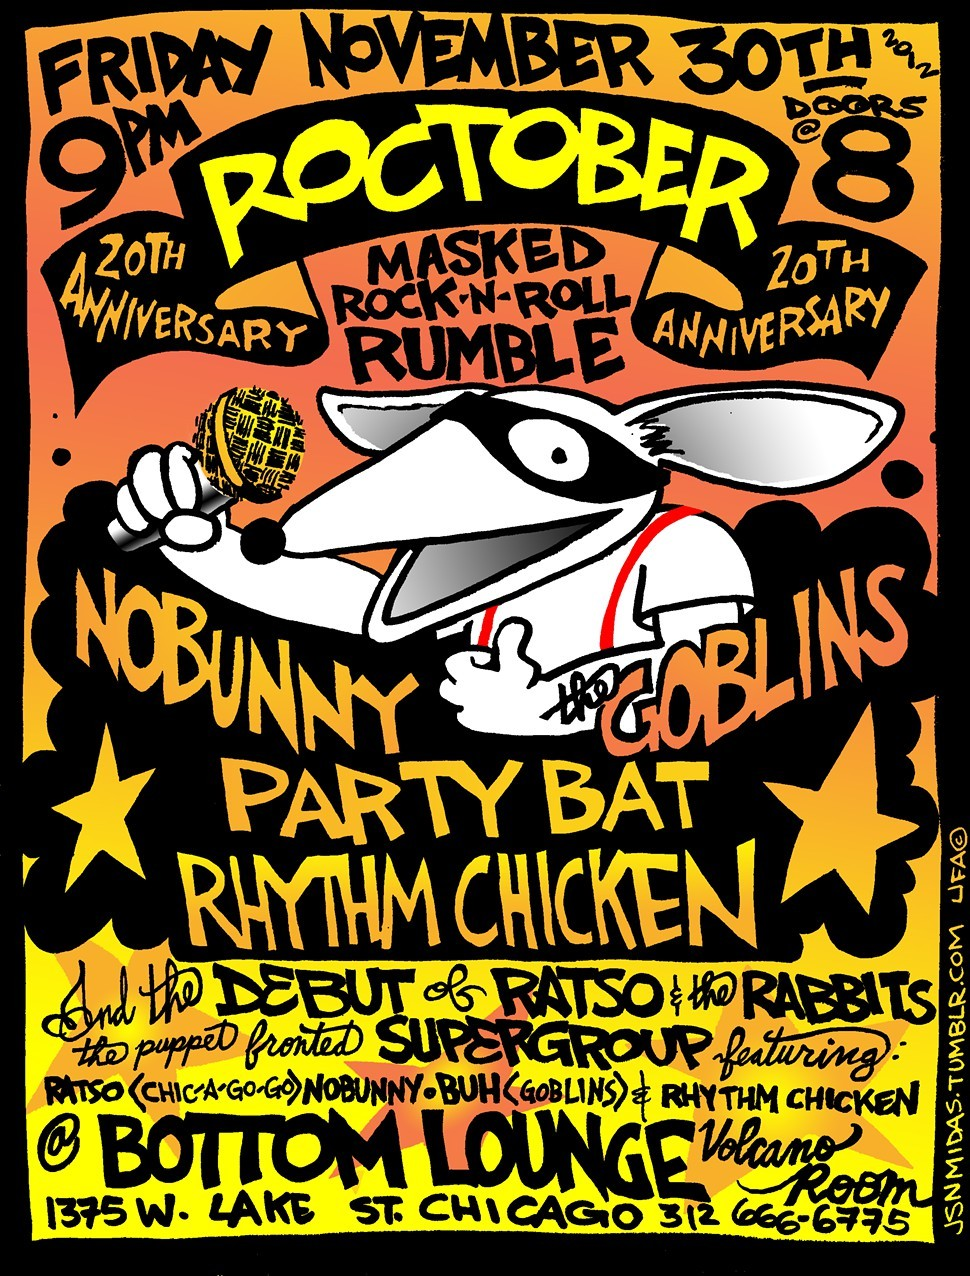 ROCTOBER20THANNIVERSARY001COLOR2.jpg